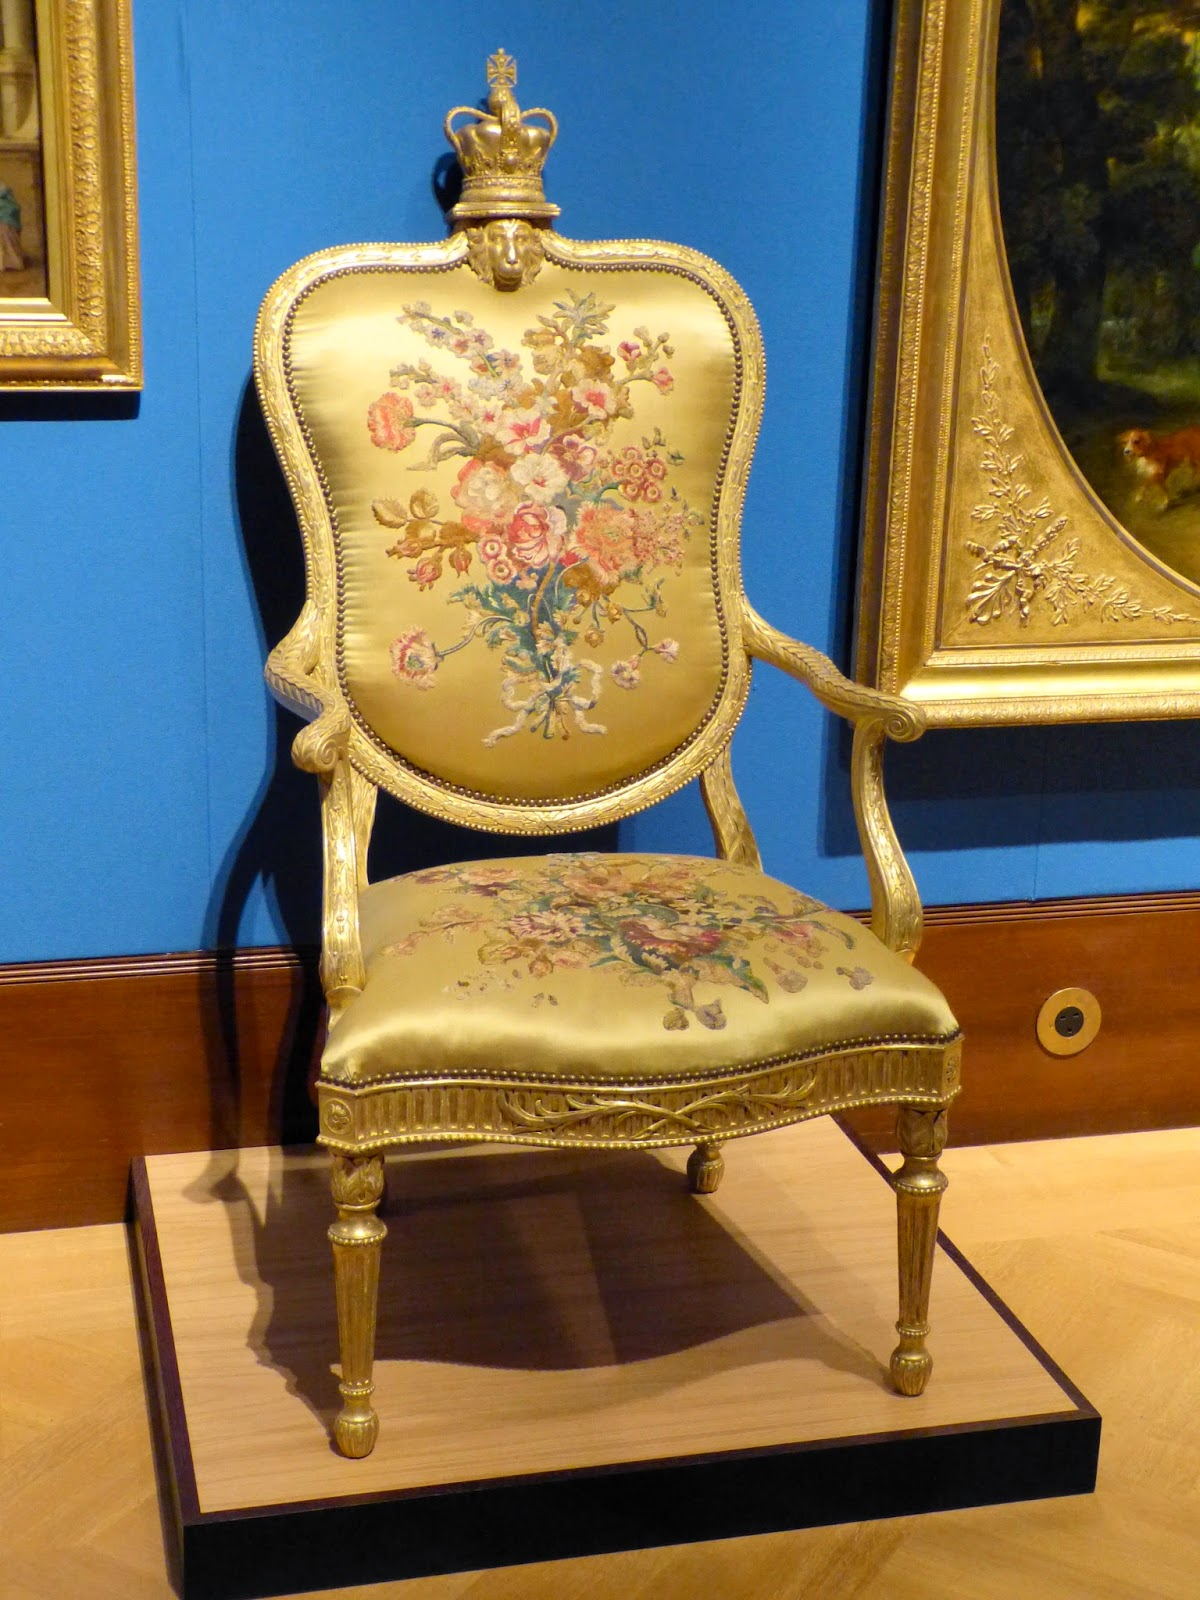 One of a pair of armchairs embroidered with designs  by Mary Moser attributed to the Royal School for   Embroidering Females under Mrs Nancy Pawsey (c1780)  Chair attributed to Robert Campbell